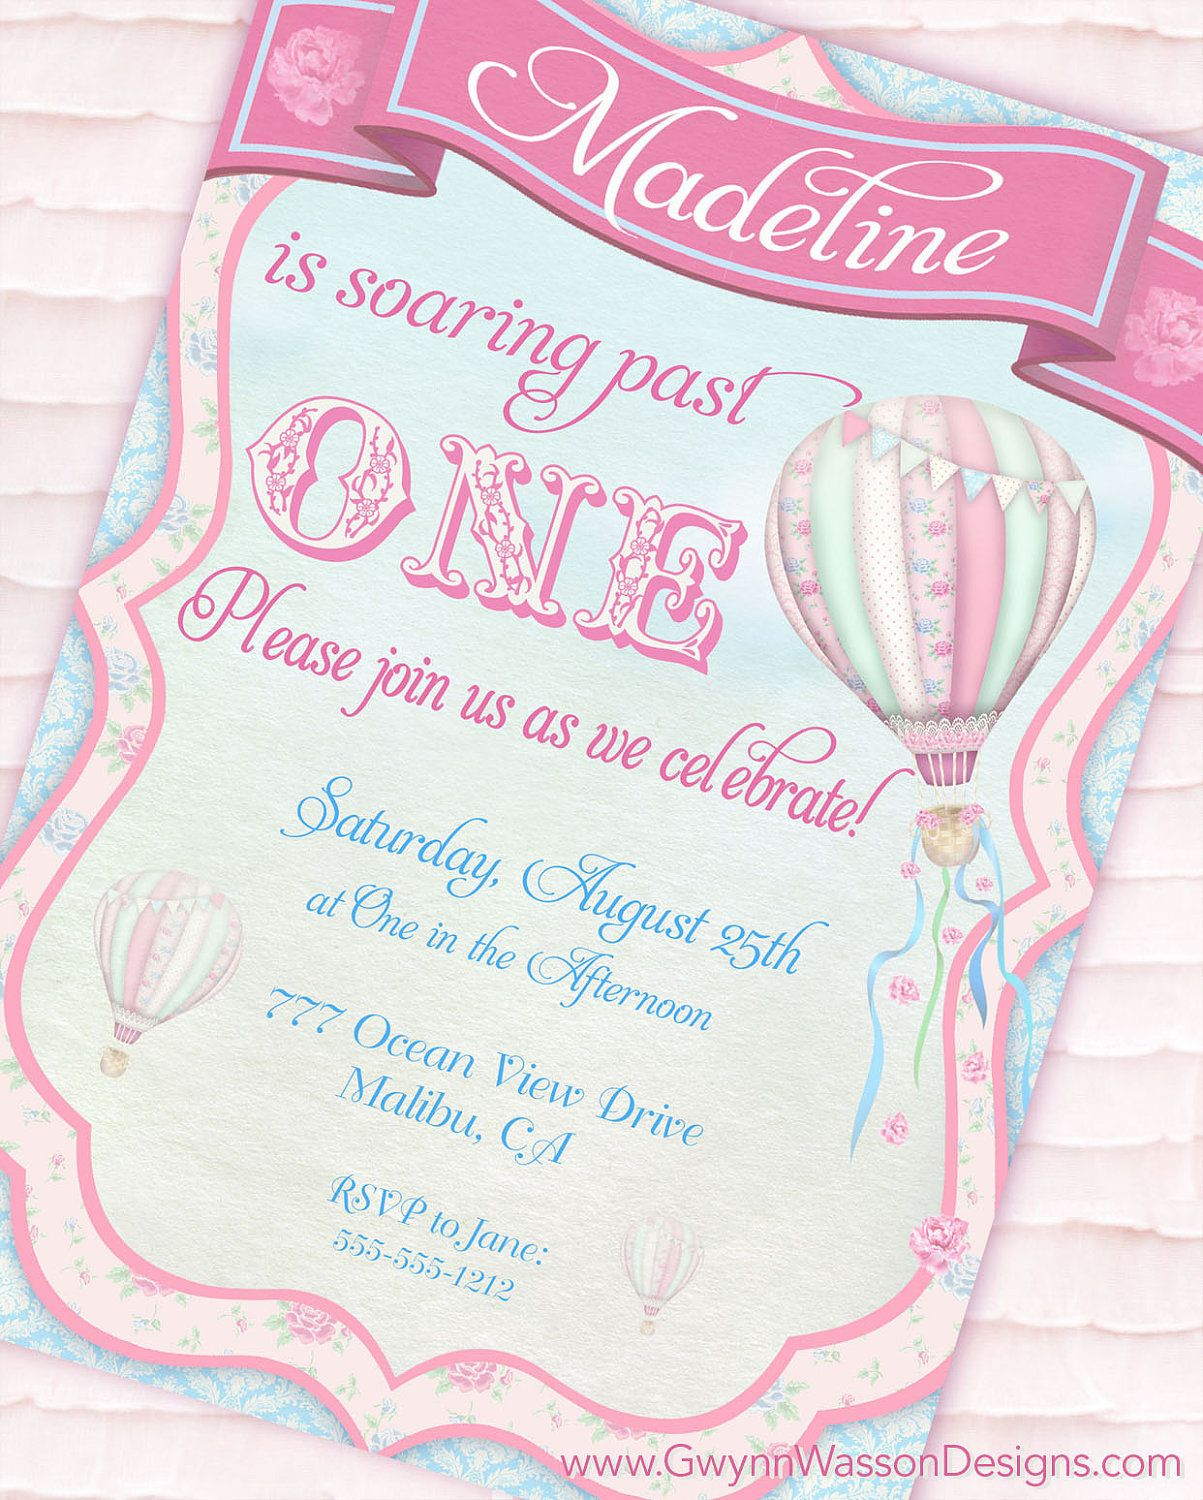 Hot Air Balloon Party Invitation - Up, Up and Away Shabby Chic ...